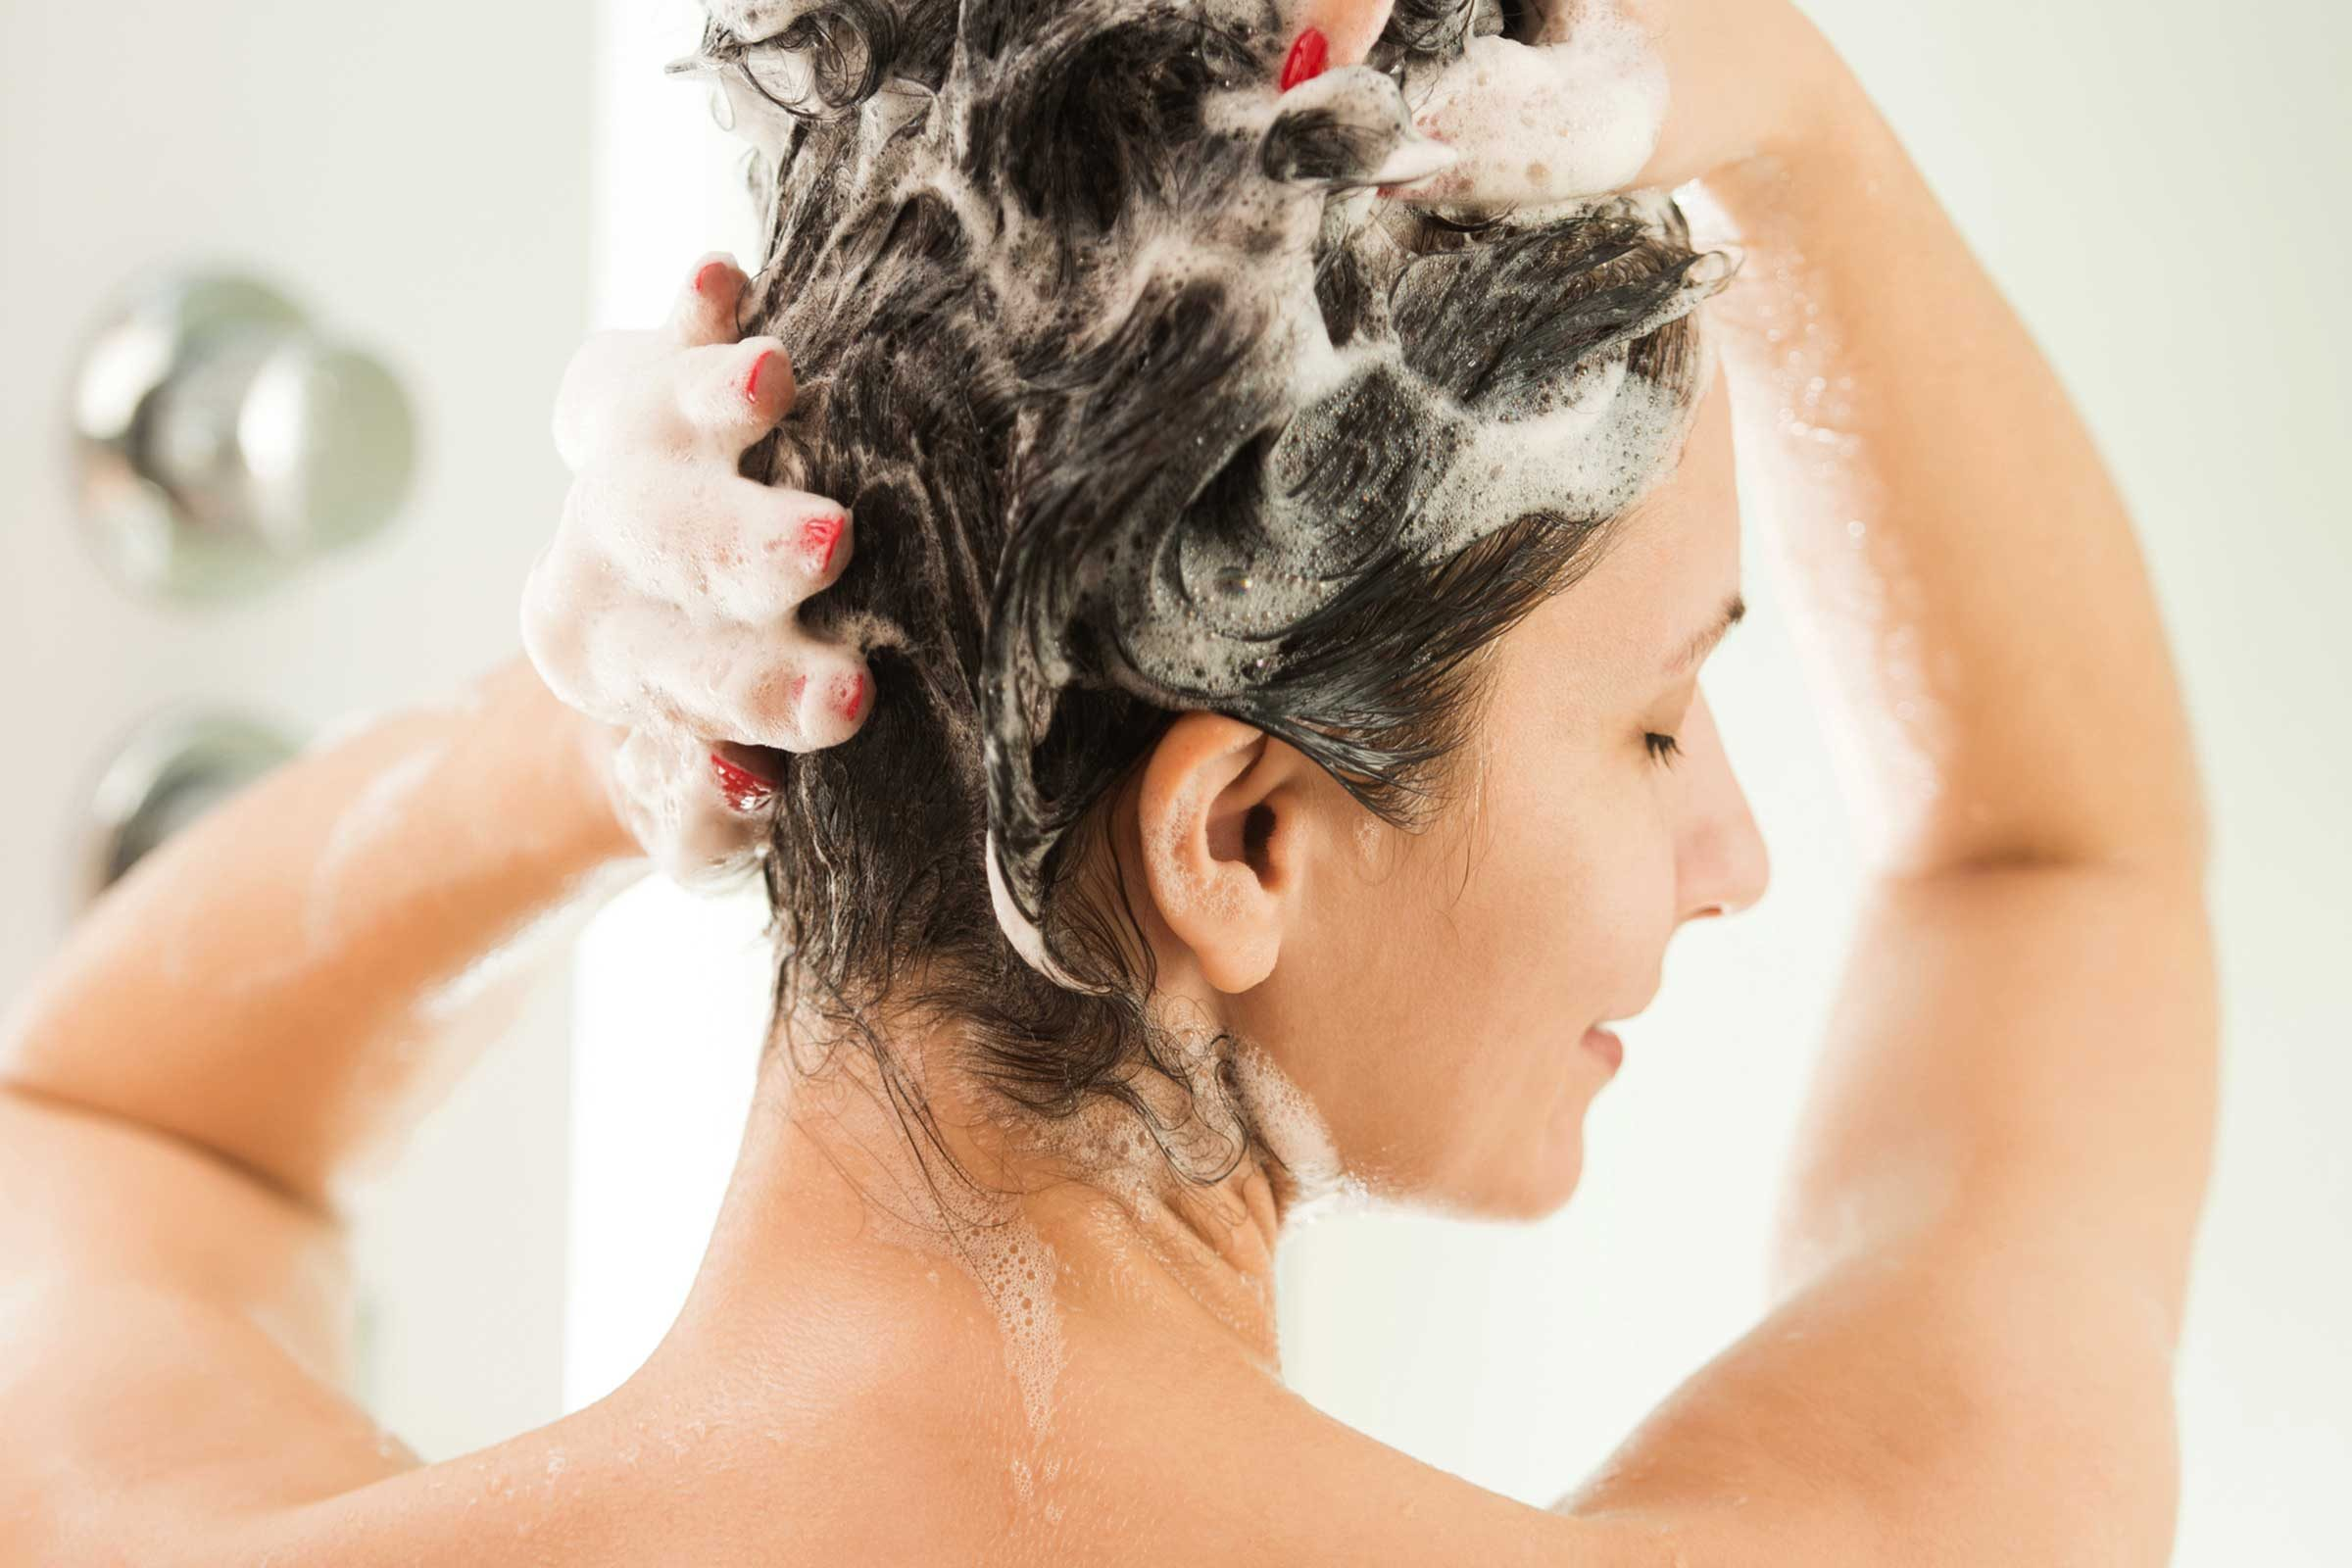 Condition Before You Shampoo: Why It's Good for Hair | Reader's Digest